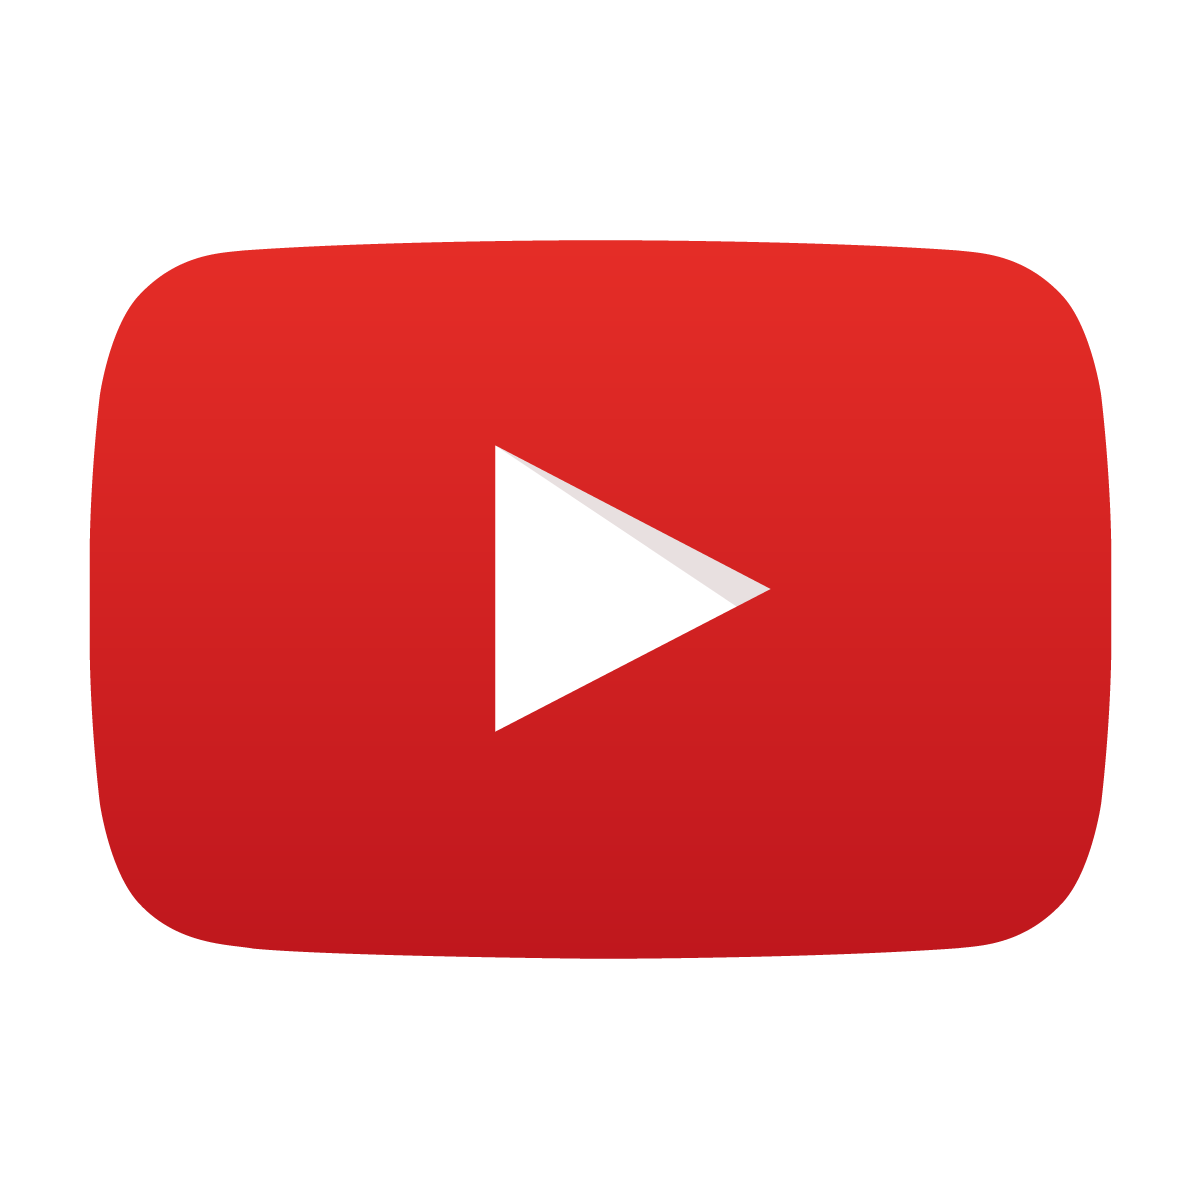 youtube transparent